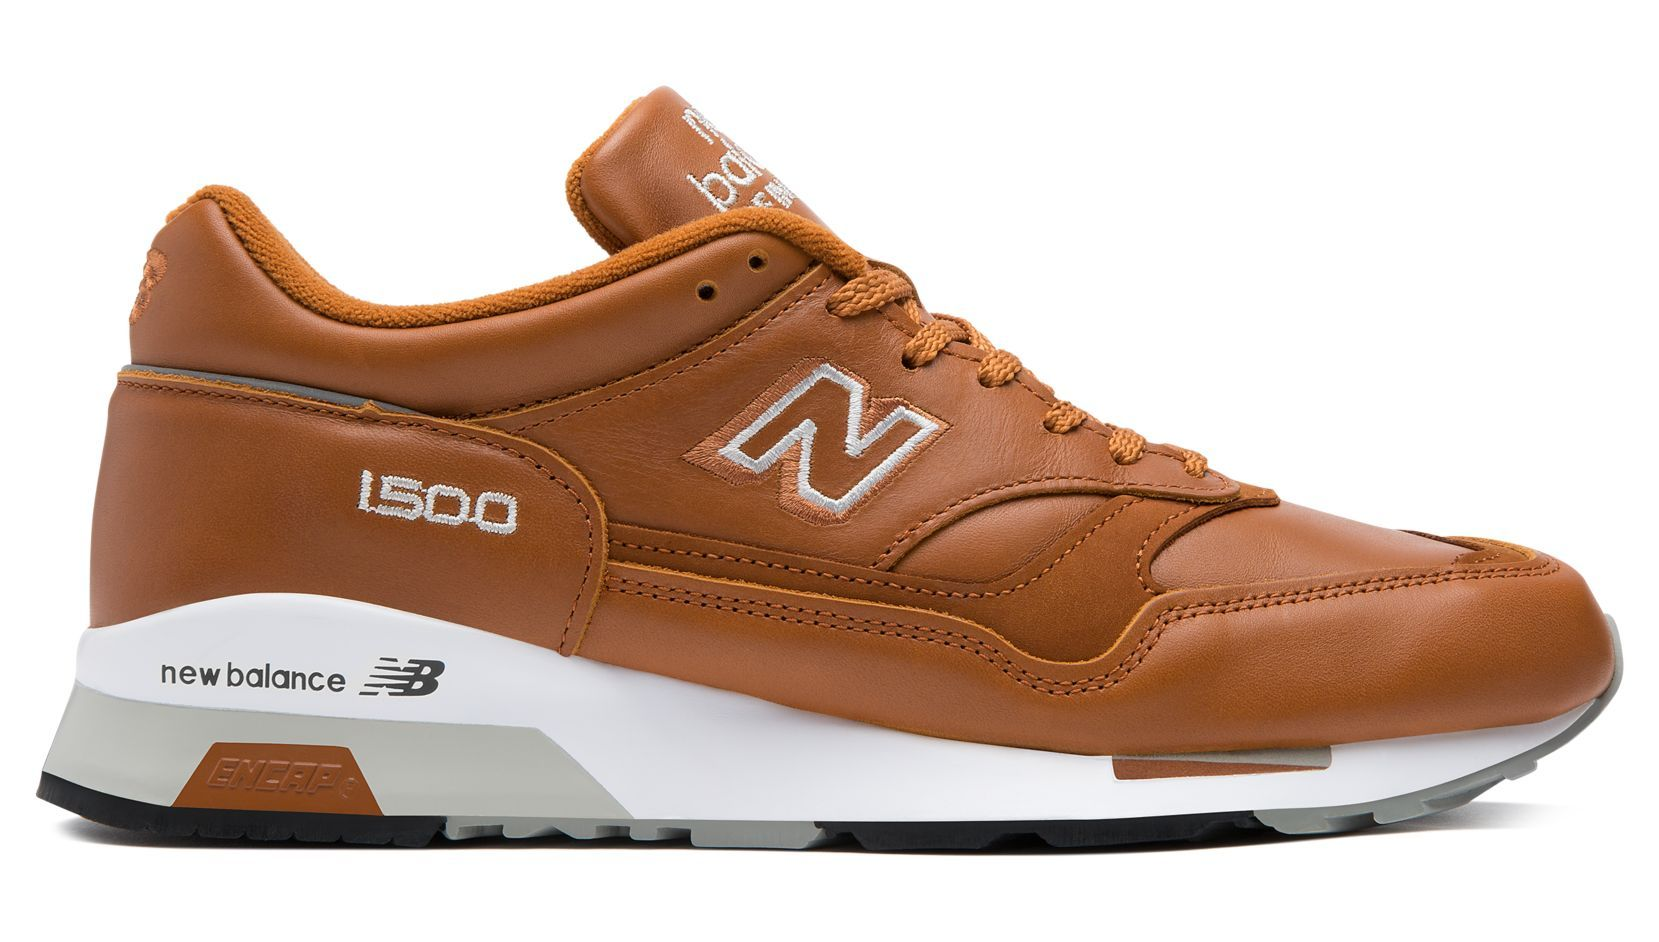 New Balance Brown 1500 Made In Uk Leather for men